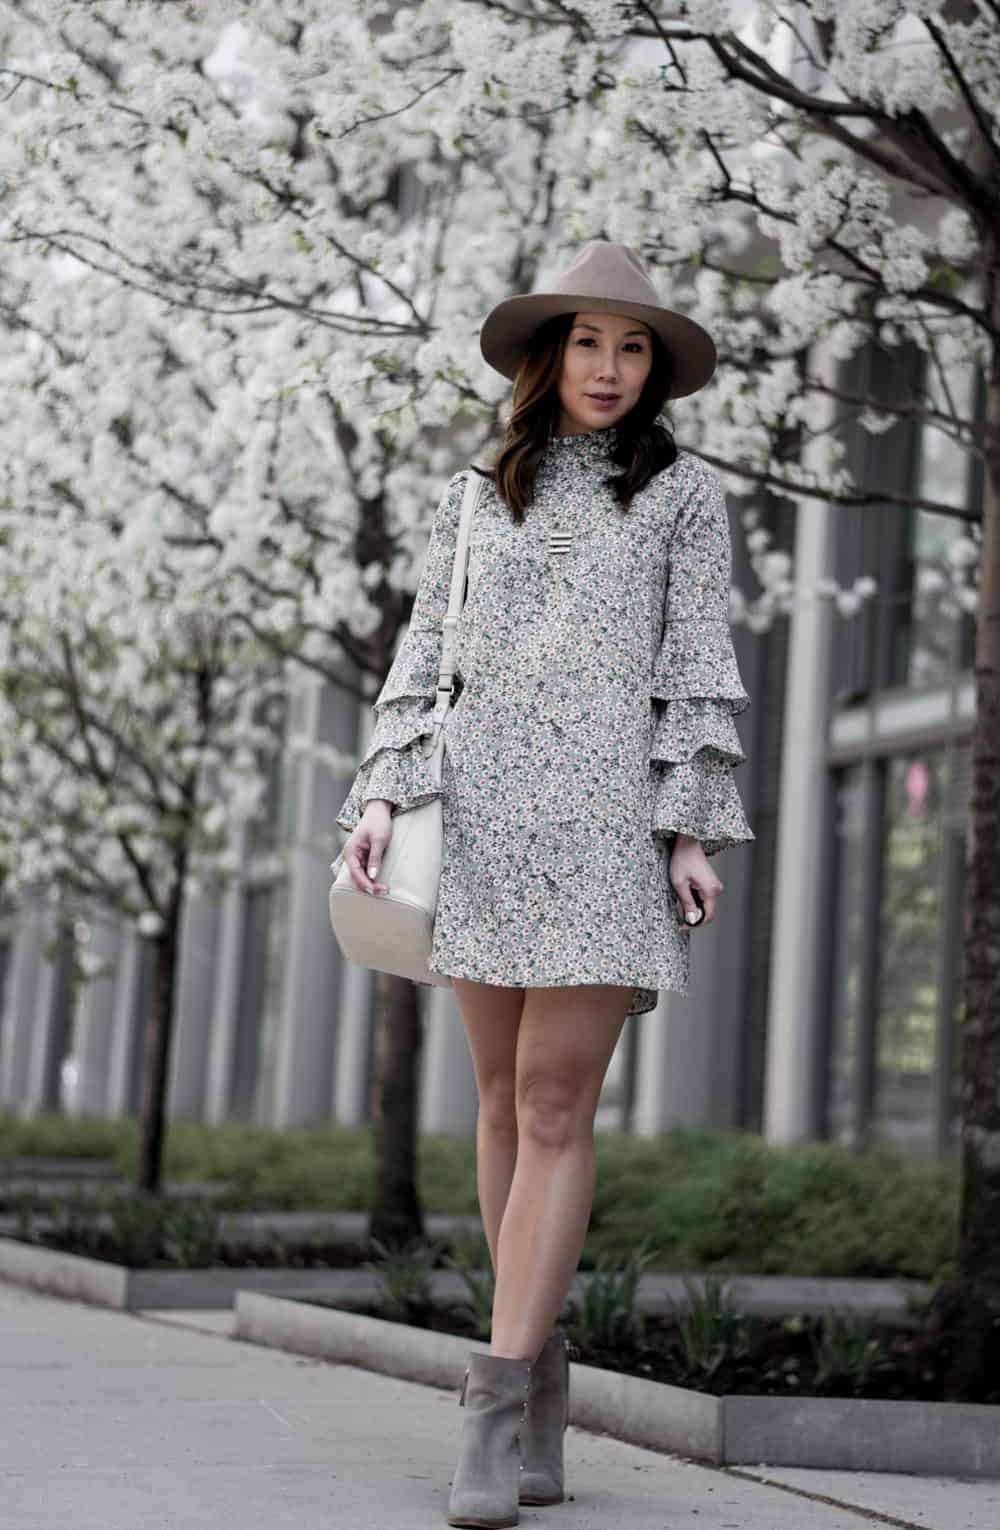 de0f4e5df2 Floral dresses with ankle boots  ootd  fblogger  styleblogger  summer   spring  look